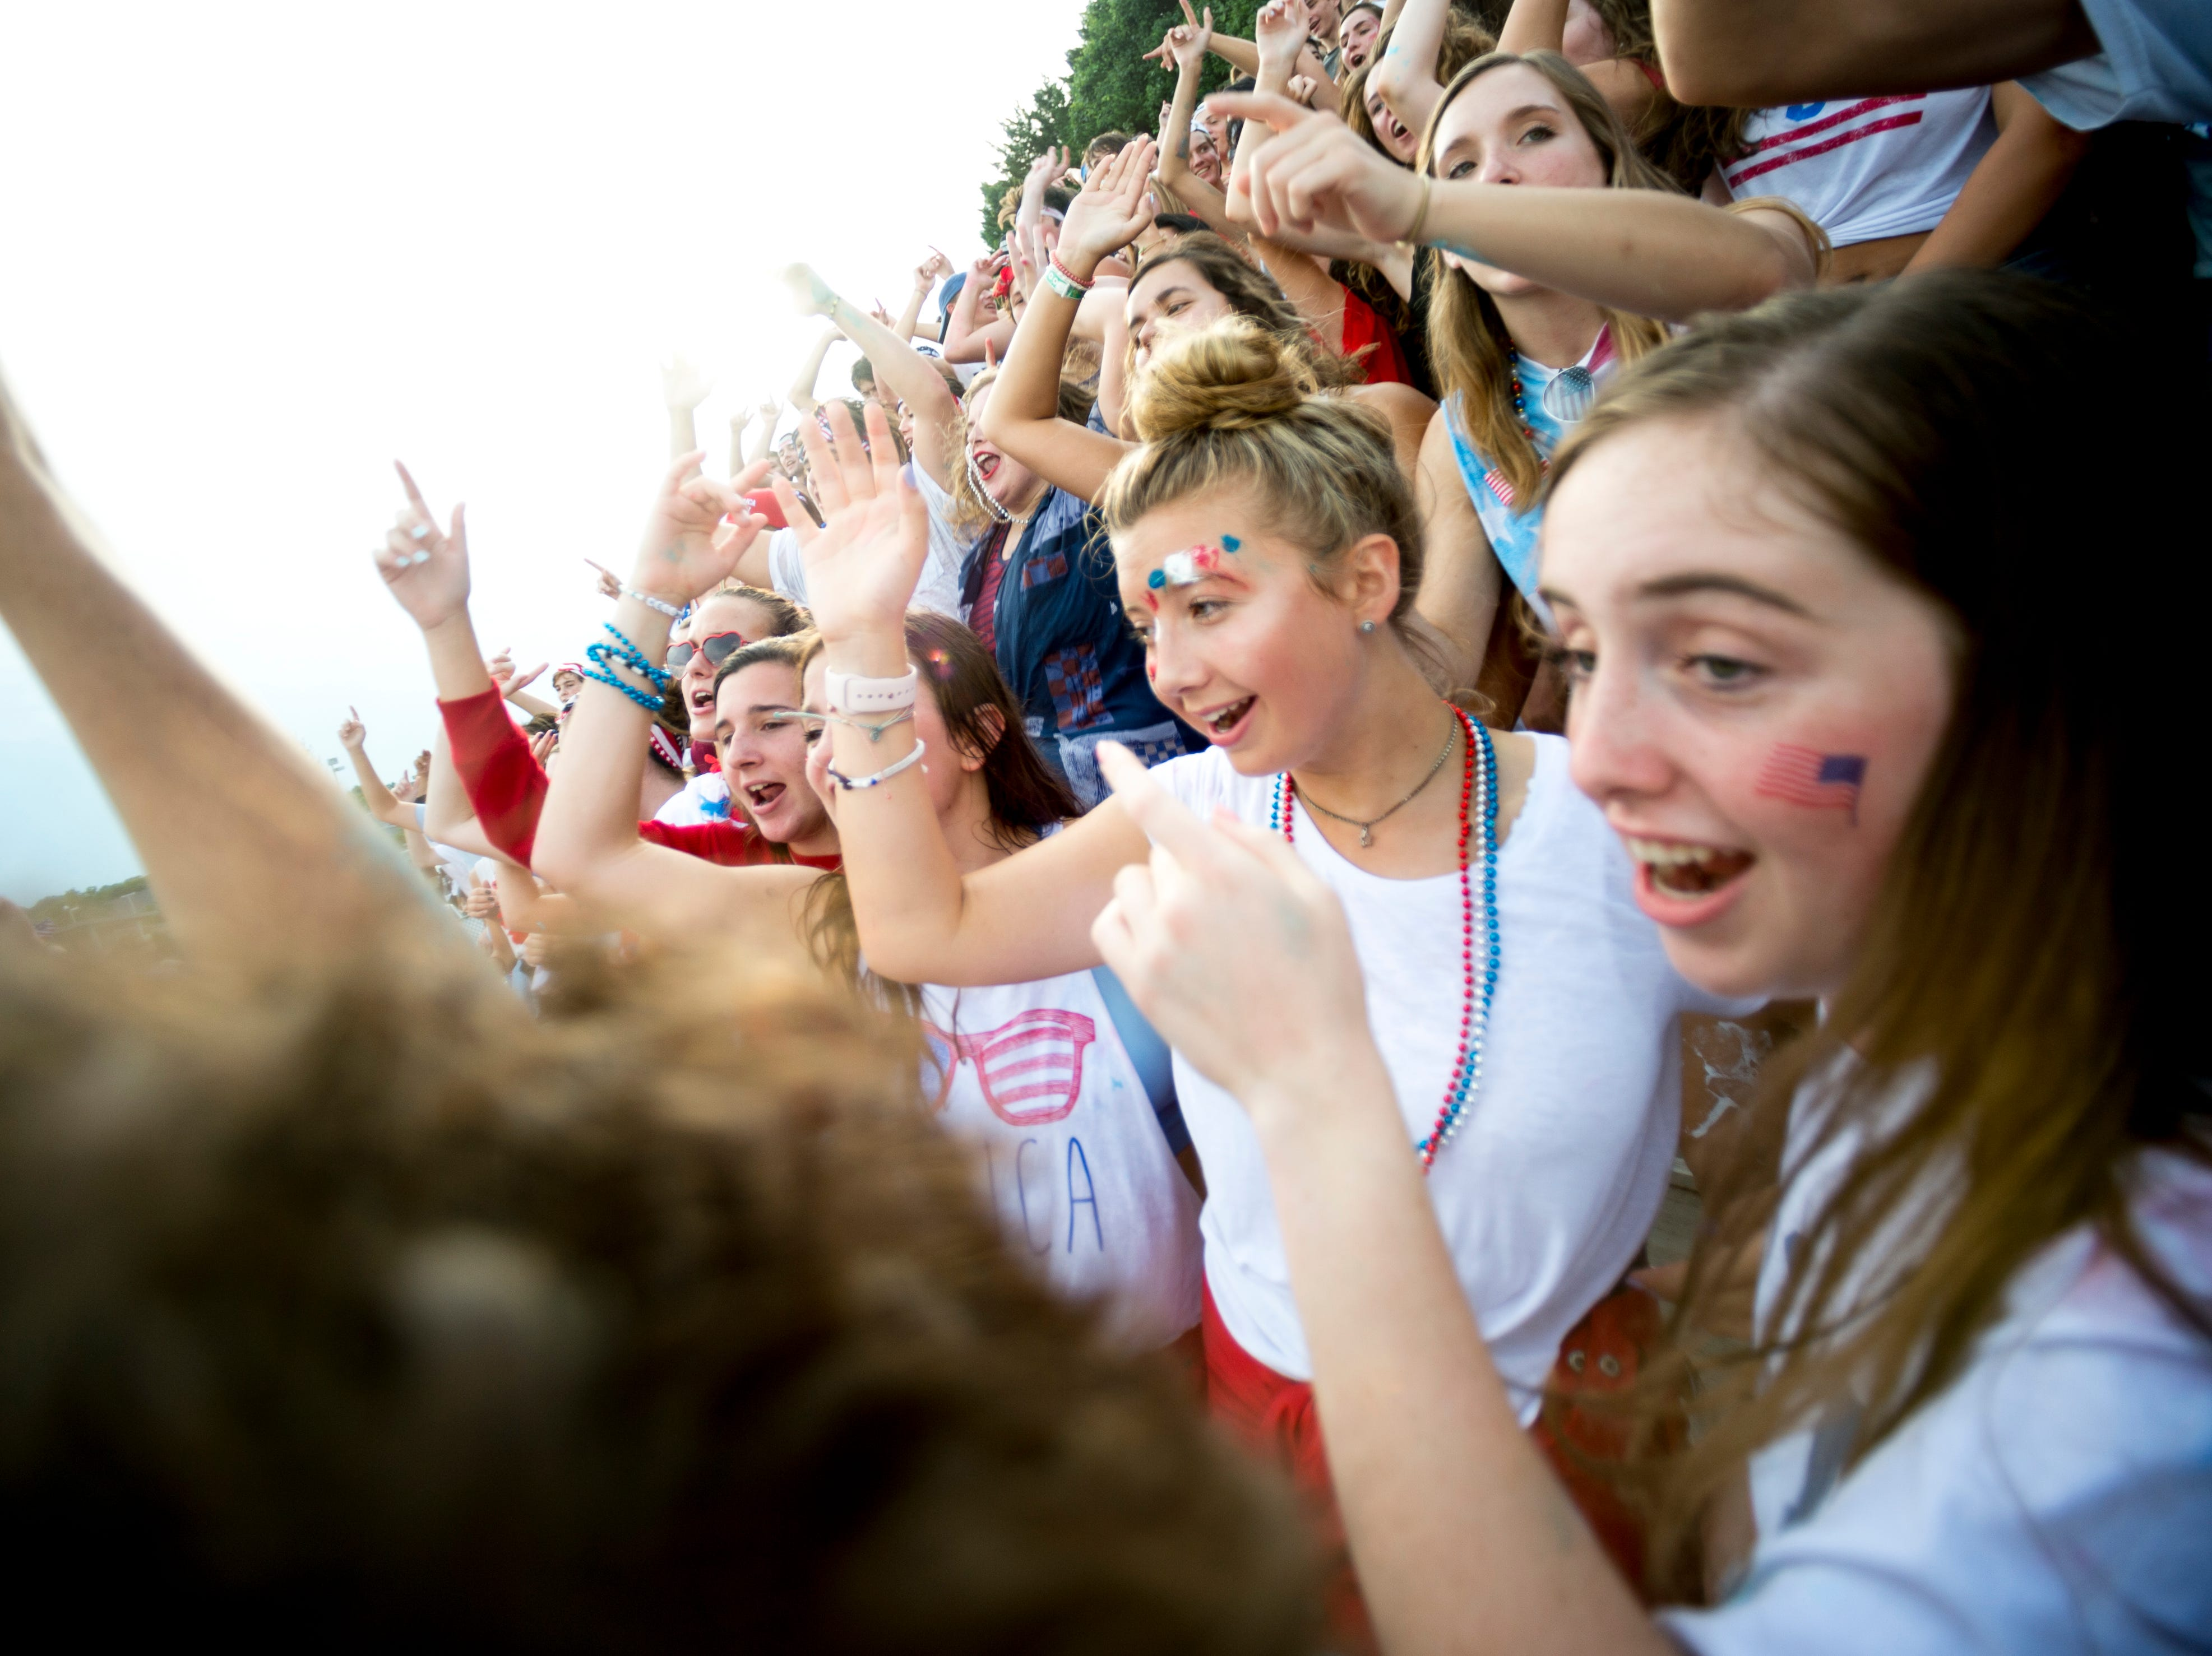 The Catholic student section cheers during a football game between Maryville and Catholic at Catholic High School in Knoxville, Tennessee on Friday, August 17, 2018.